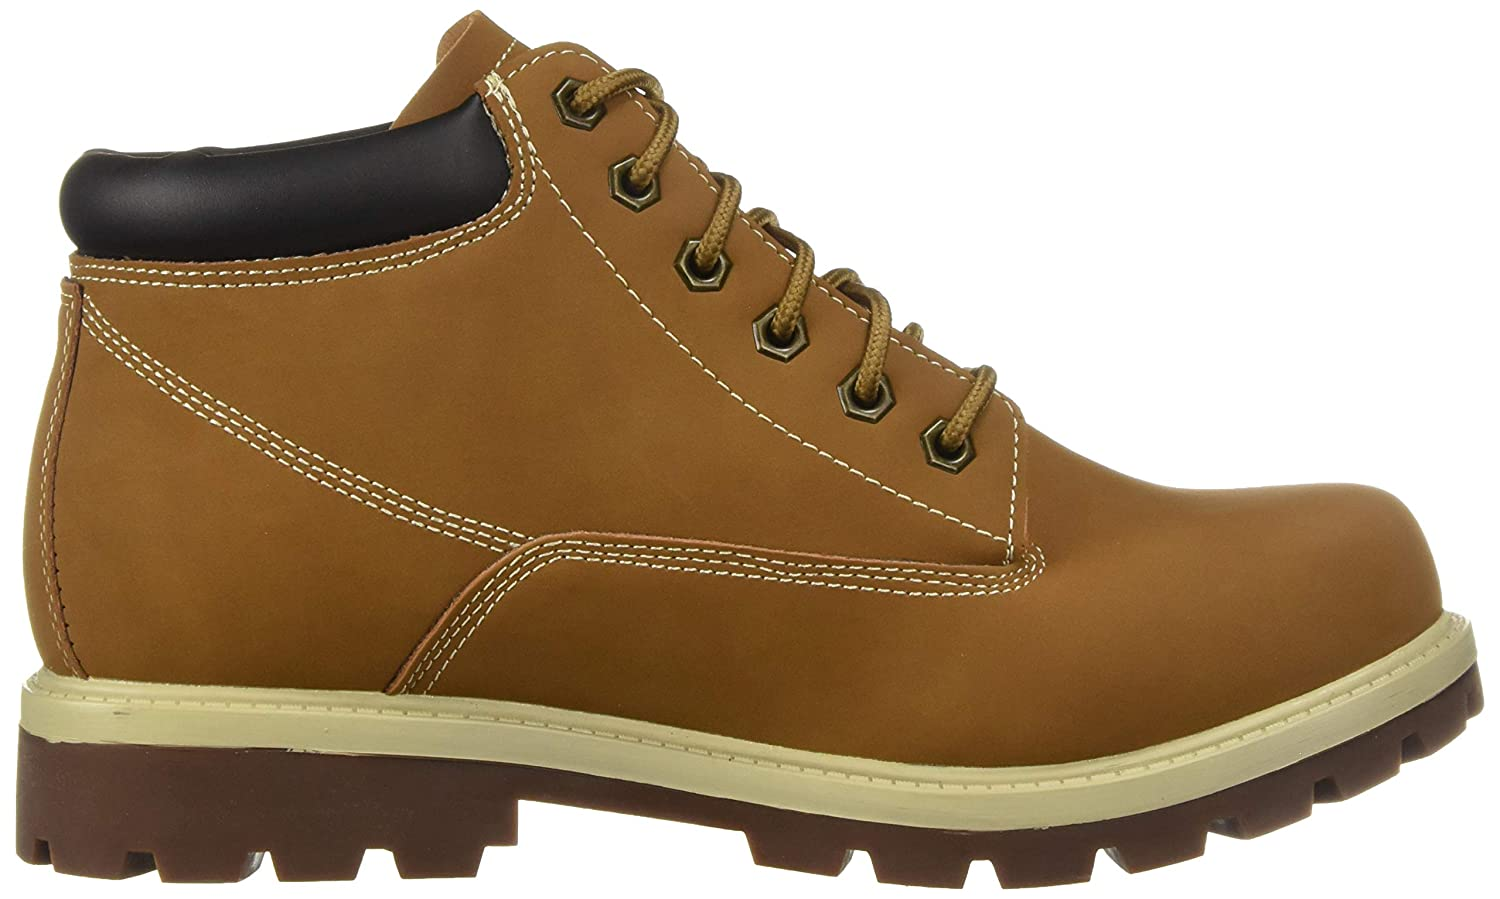 Skechers Toric Amado Men's Outdoor Boots Relaxed FIT